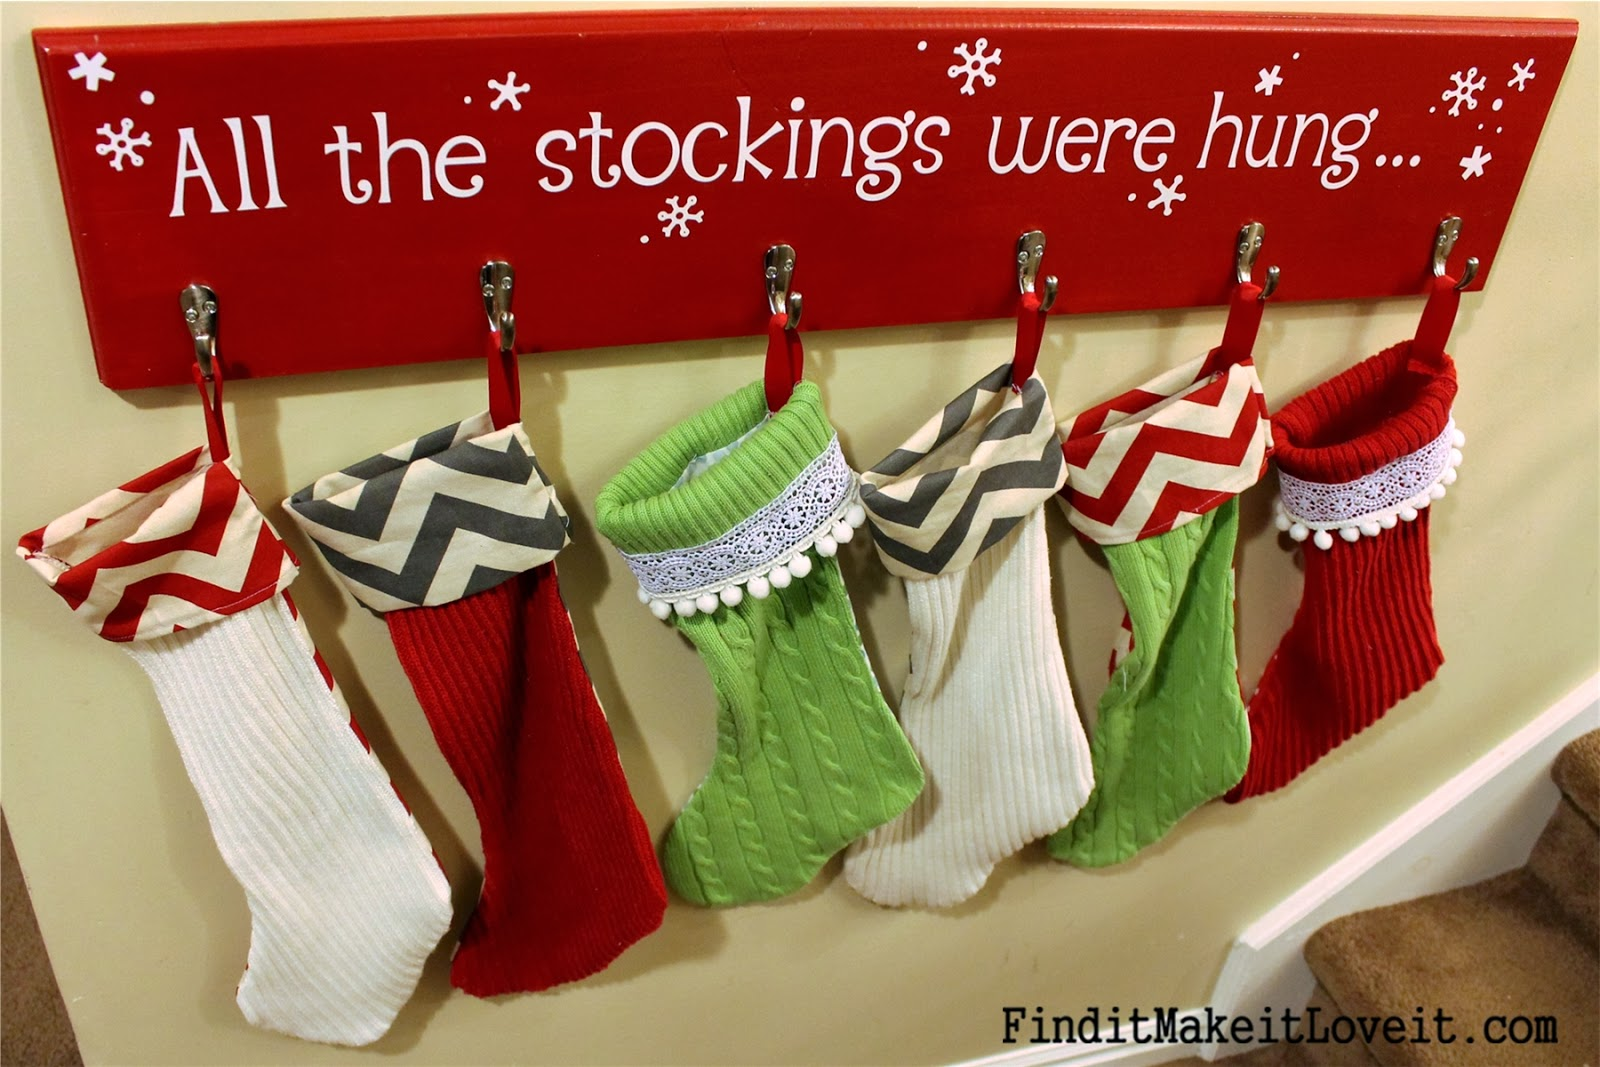 Diy stockings from thrift store sweaters find it make it love it solutioingenieria Gallery